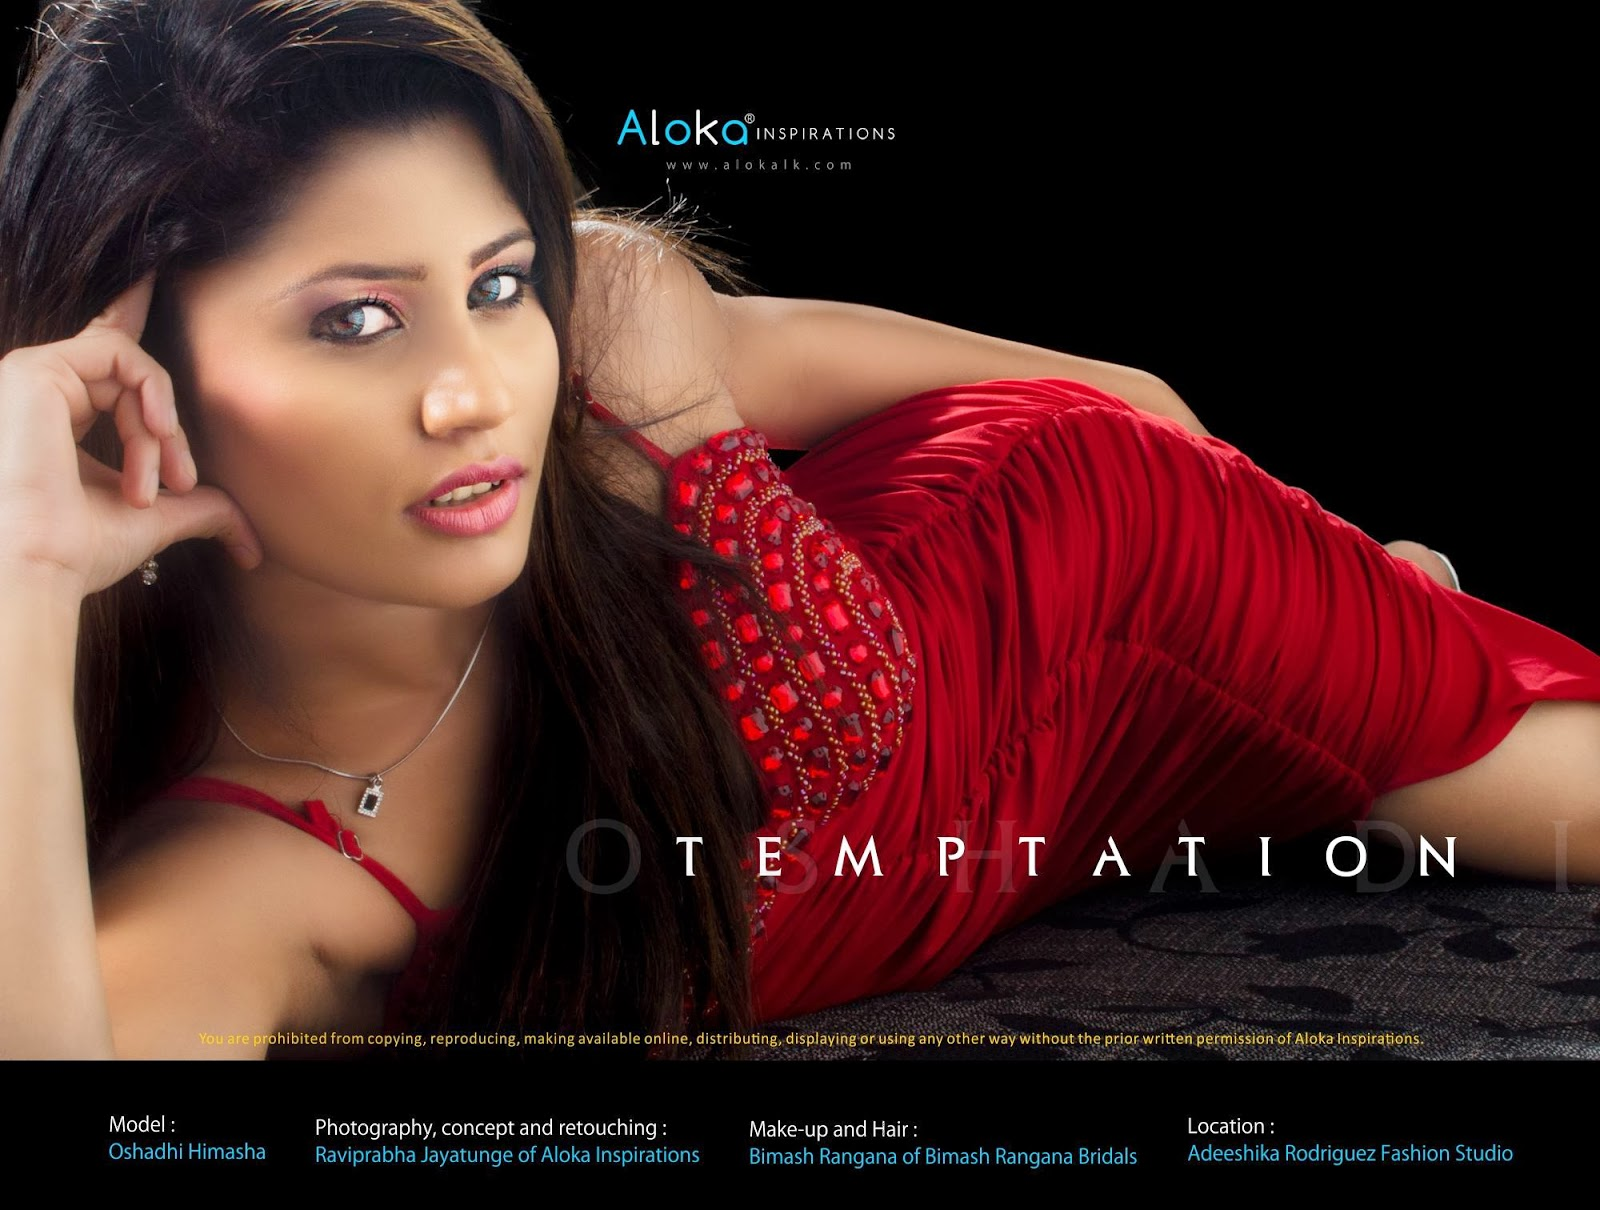 Nimantha Gunawardane of Aloka Inspirations and Adeeshika Rodriguez